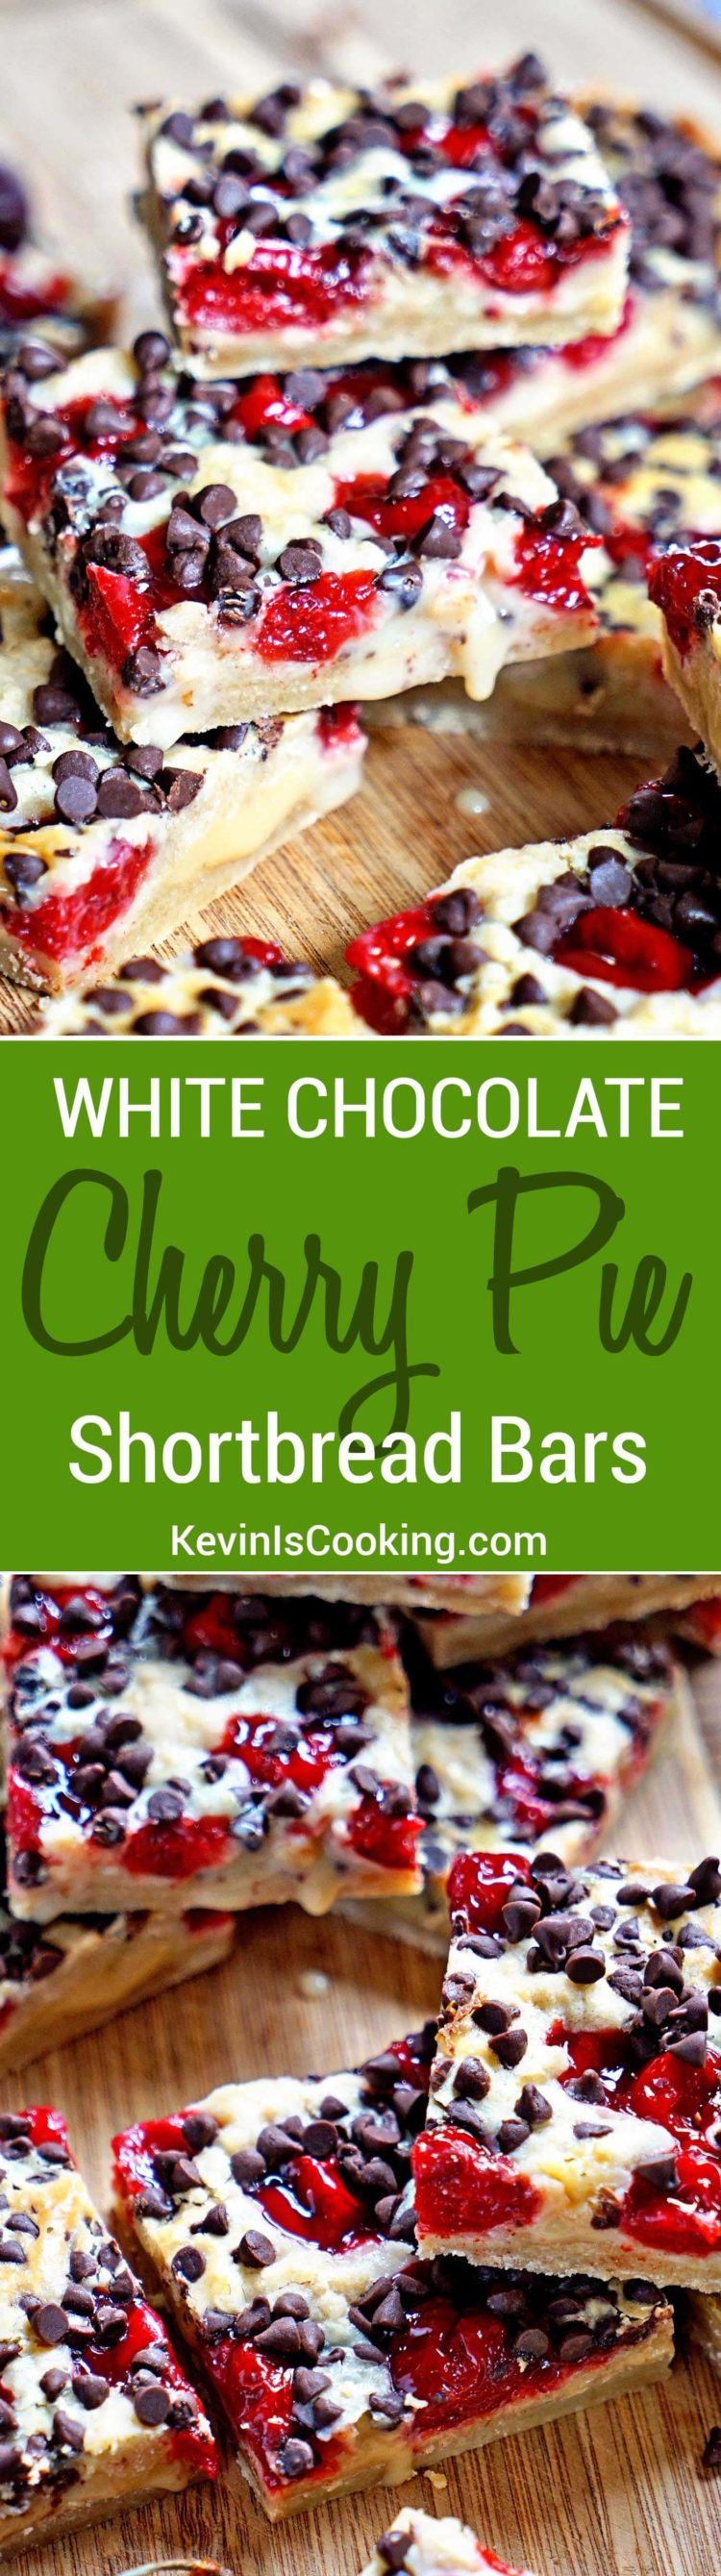 These White Chocolate Cherry Pie Shortbread Bars are perfect for the kids this summer and the family BBQ. We eat them up. Chocolate and cherry on shortbread - YES!